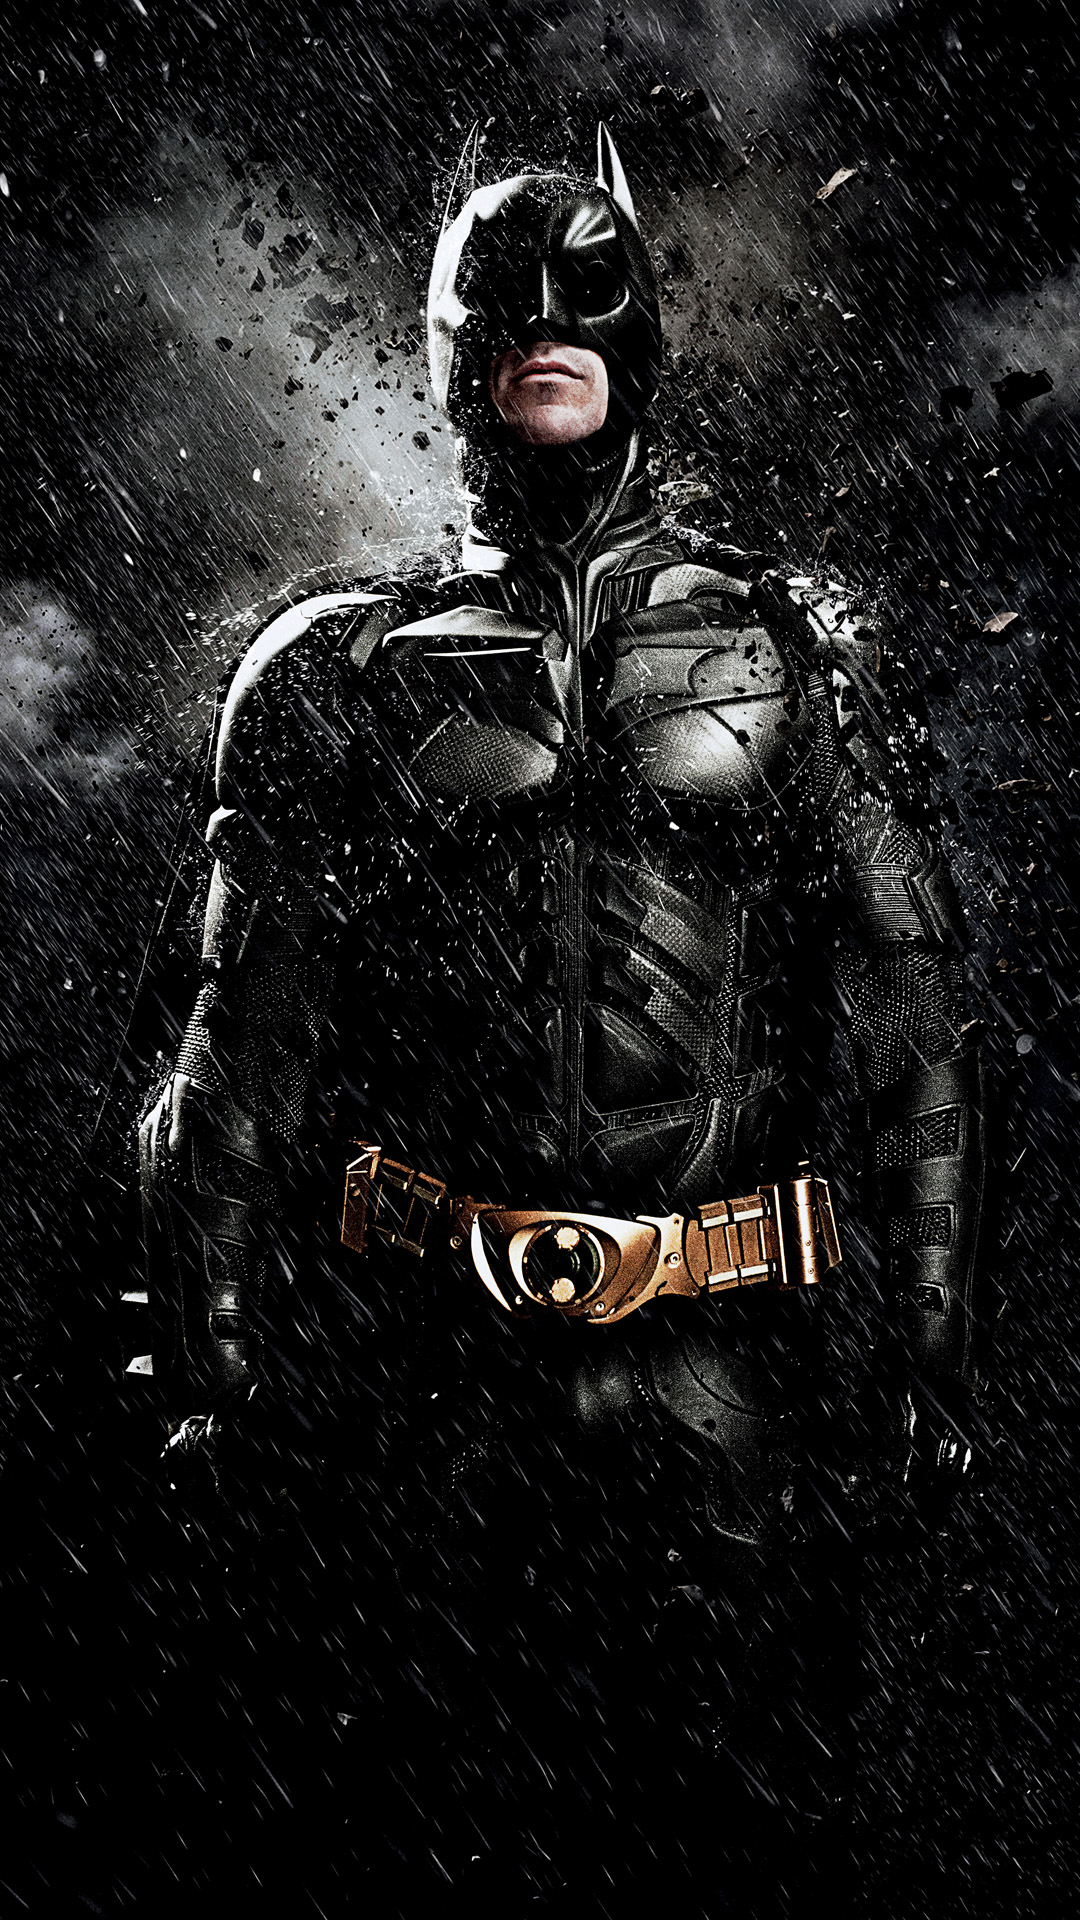 Batman The Dark Knight Rises - Best htc one wallpapers, free and easy to download